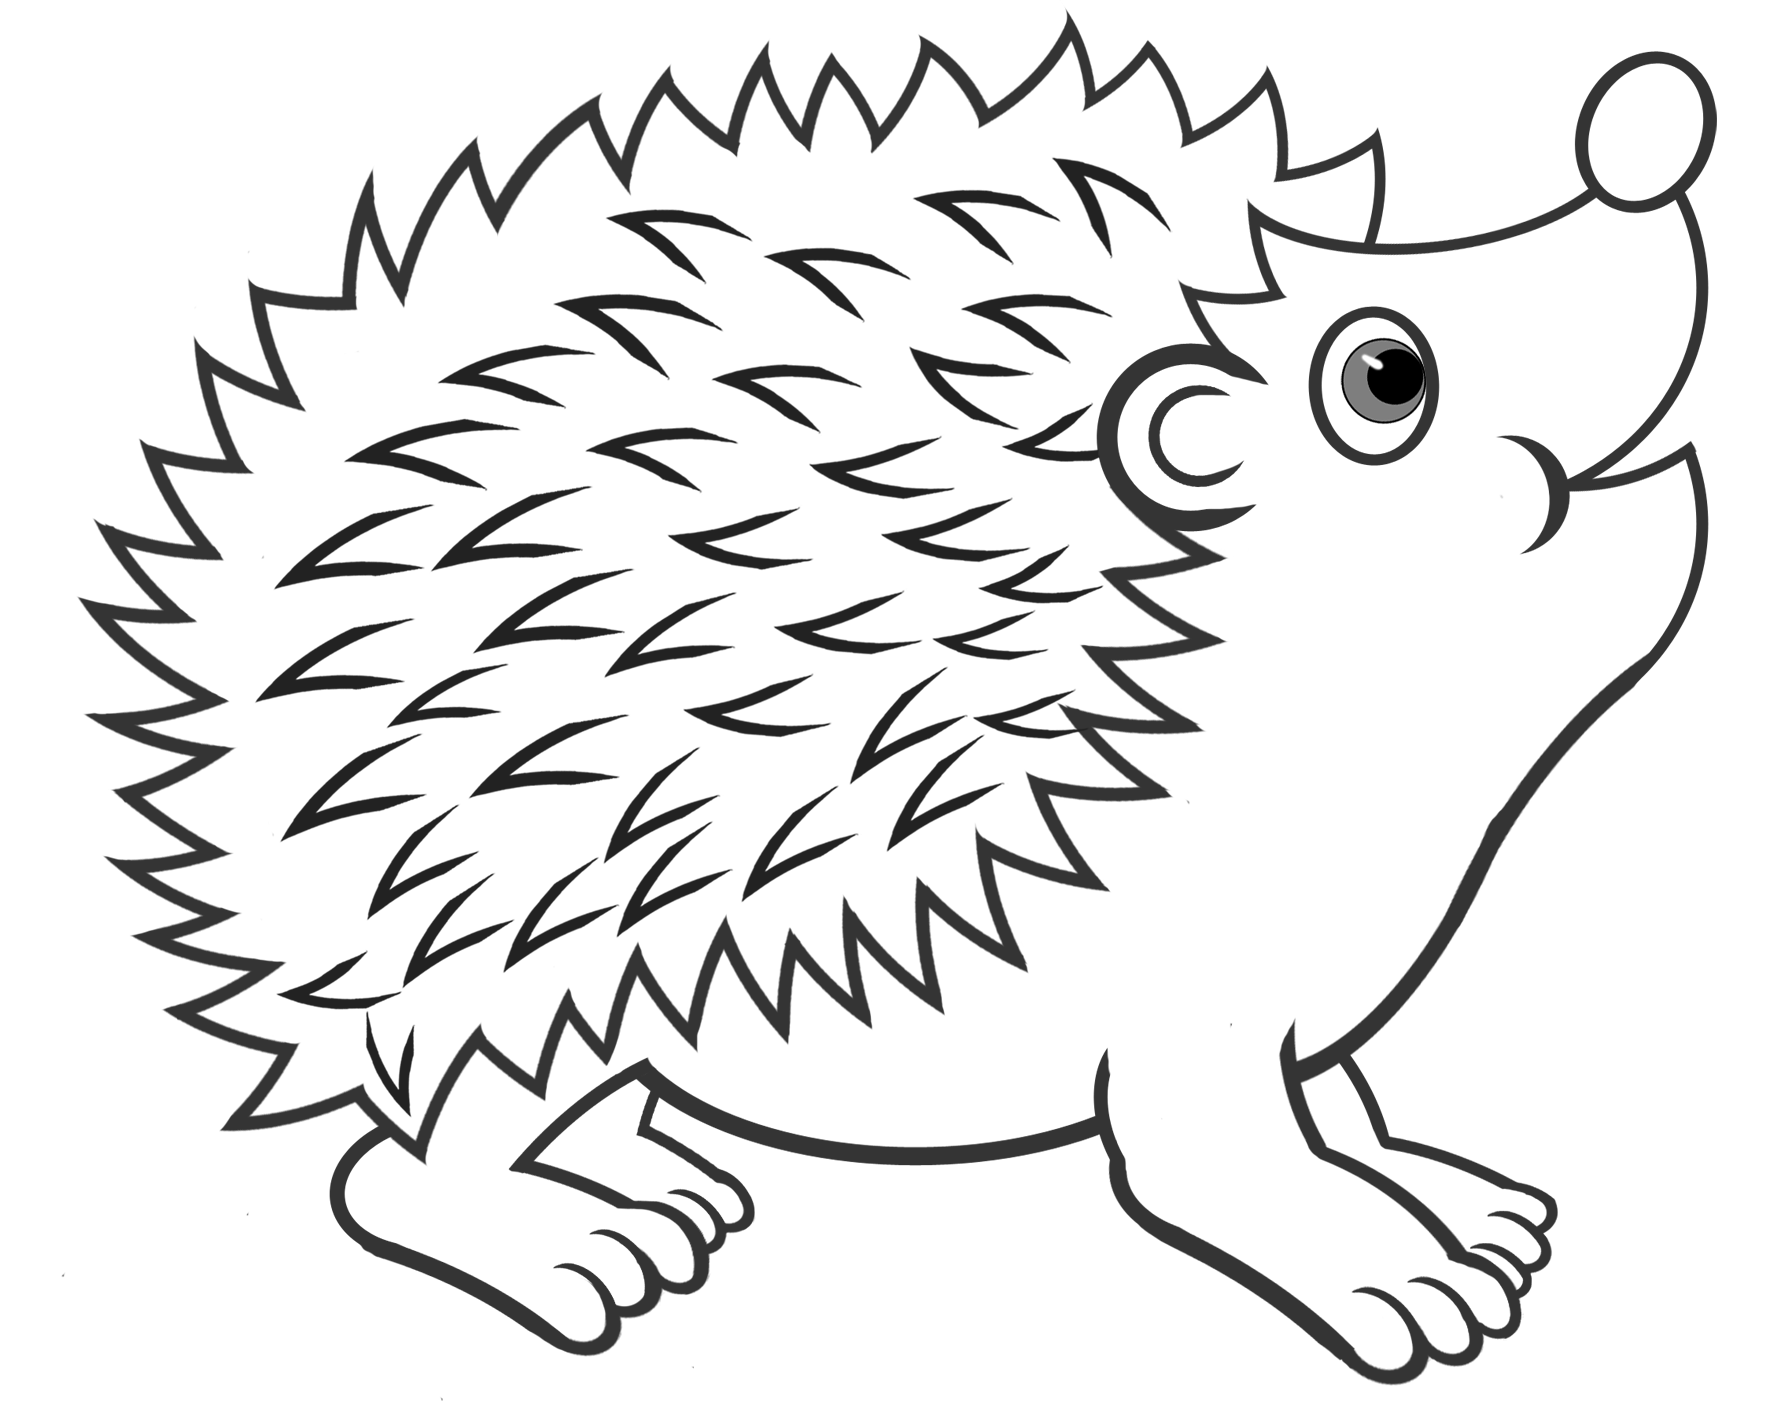 A Hedgehog Coloring Page